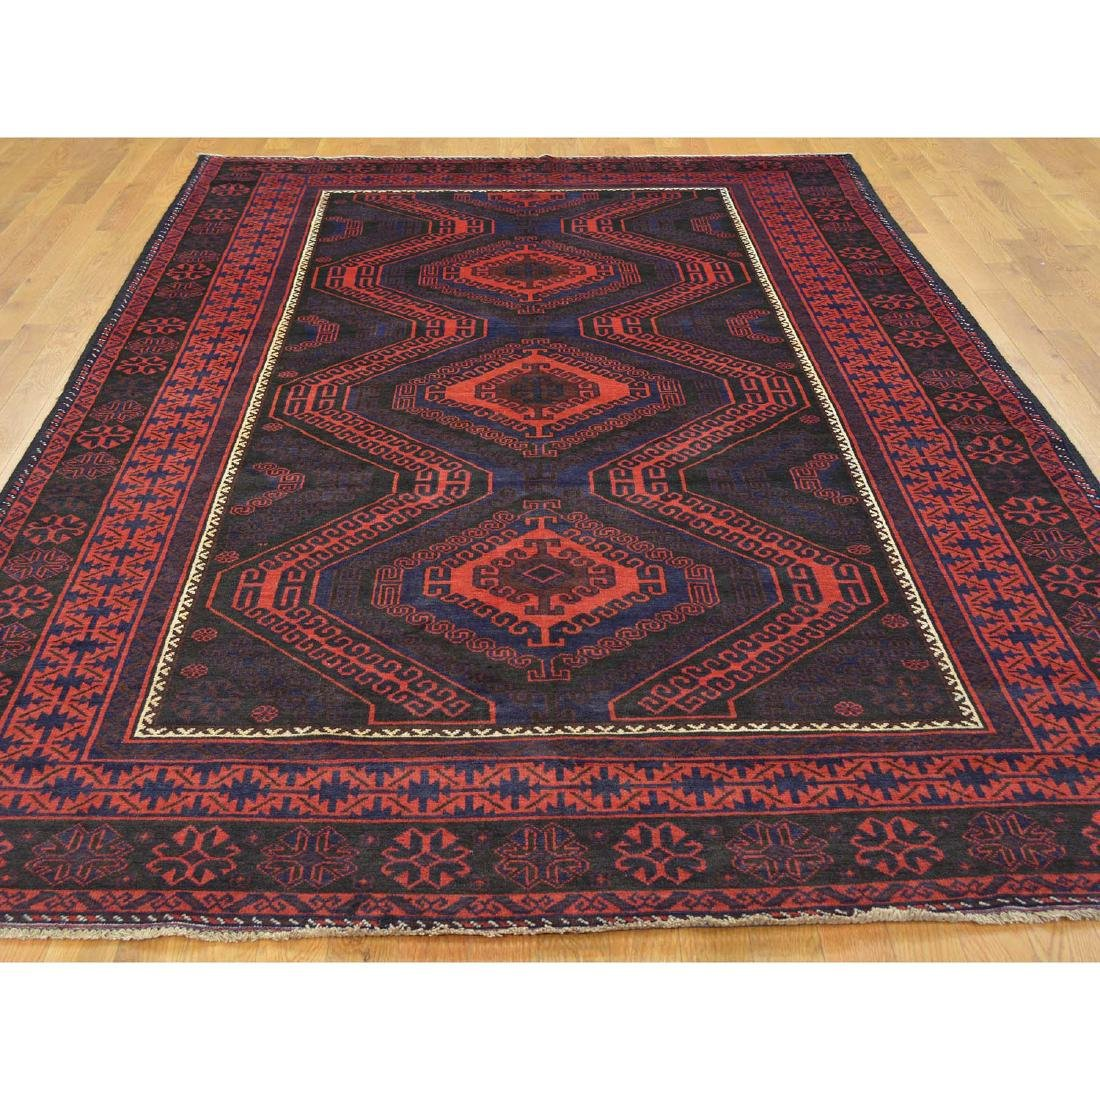 Tribal Design Persian Baluch Hand Made Rug 6.7x10.8 - 2